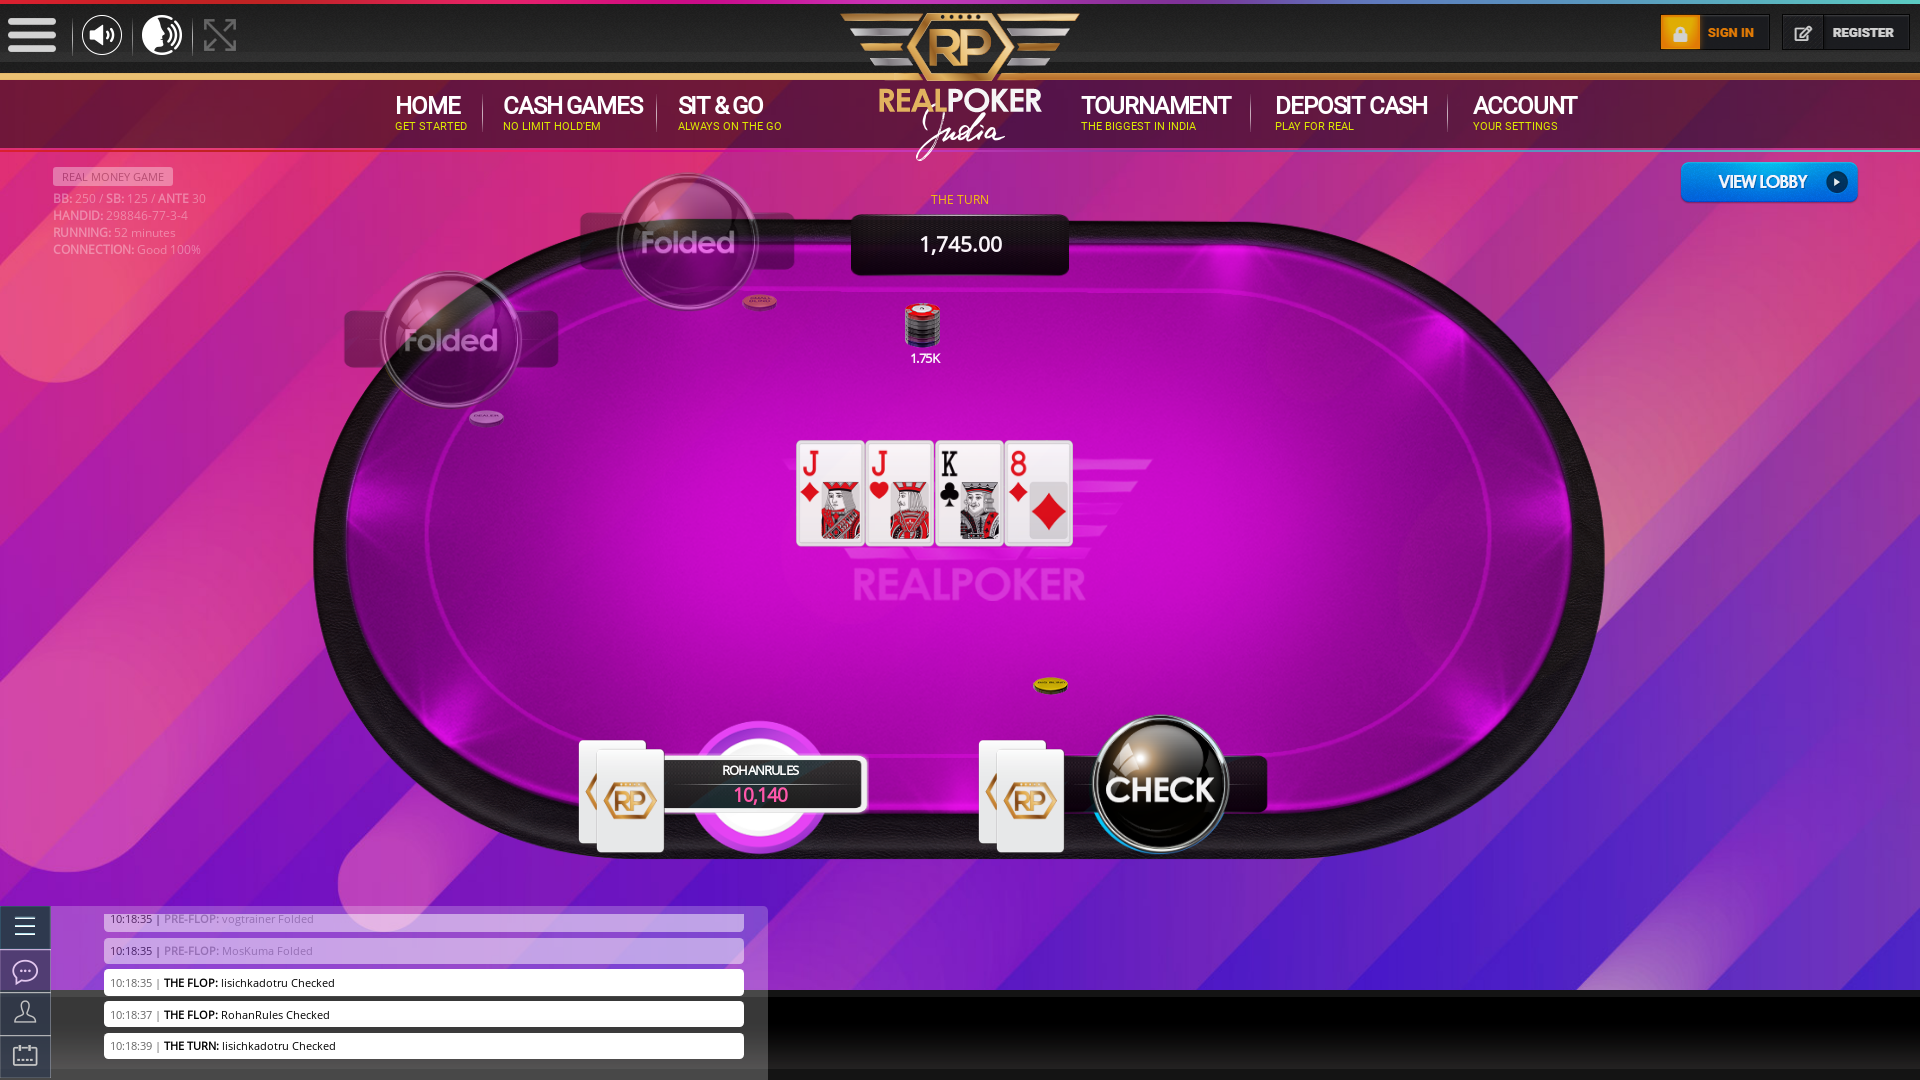 Indian poker on a 10 player table in the 52nd minute